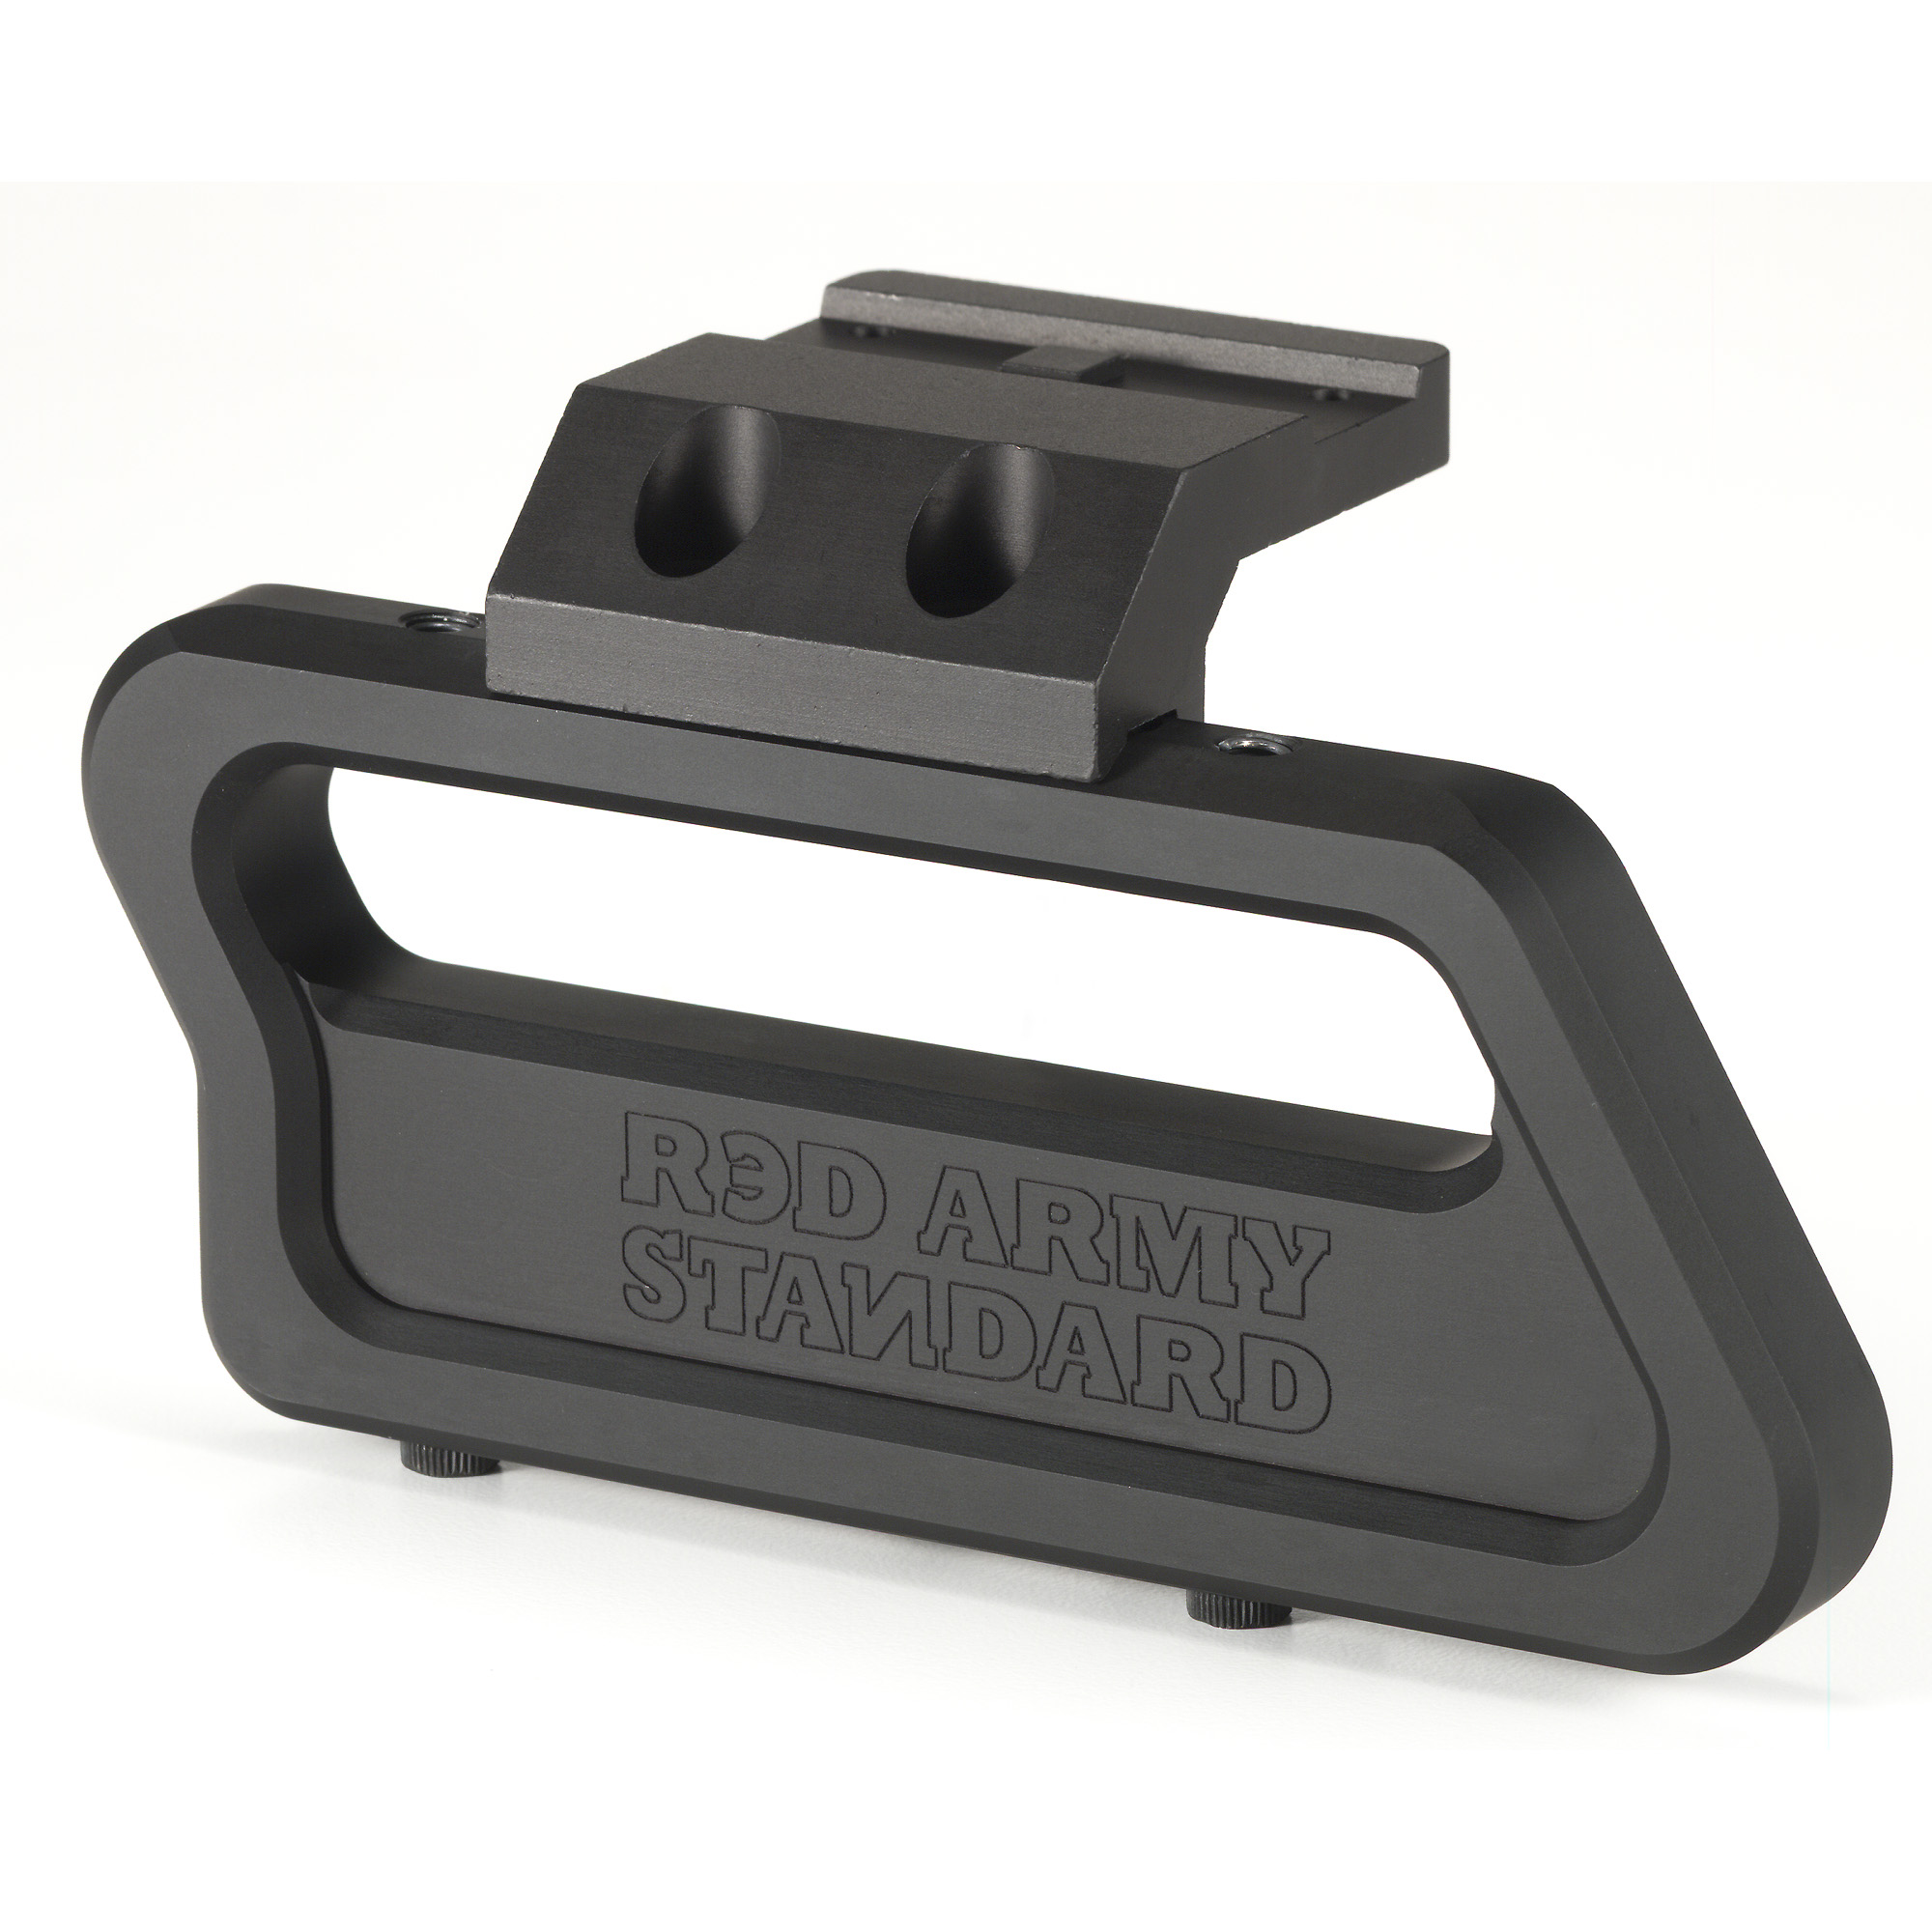 The Red Army Standard AK Micro Dot Side Mount combines superior overall strength with four times clamping improvement over traditional side scope rail mounts. The revolutionary design makes it the first side mount that offers a return to zero capability. The rugged and reliable mount is compatible with most standard T1/H1 style optics and is 100% made in the U.S.A.